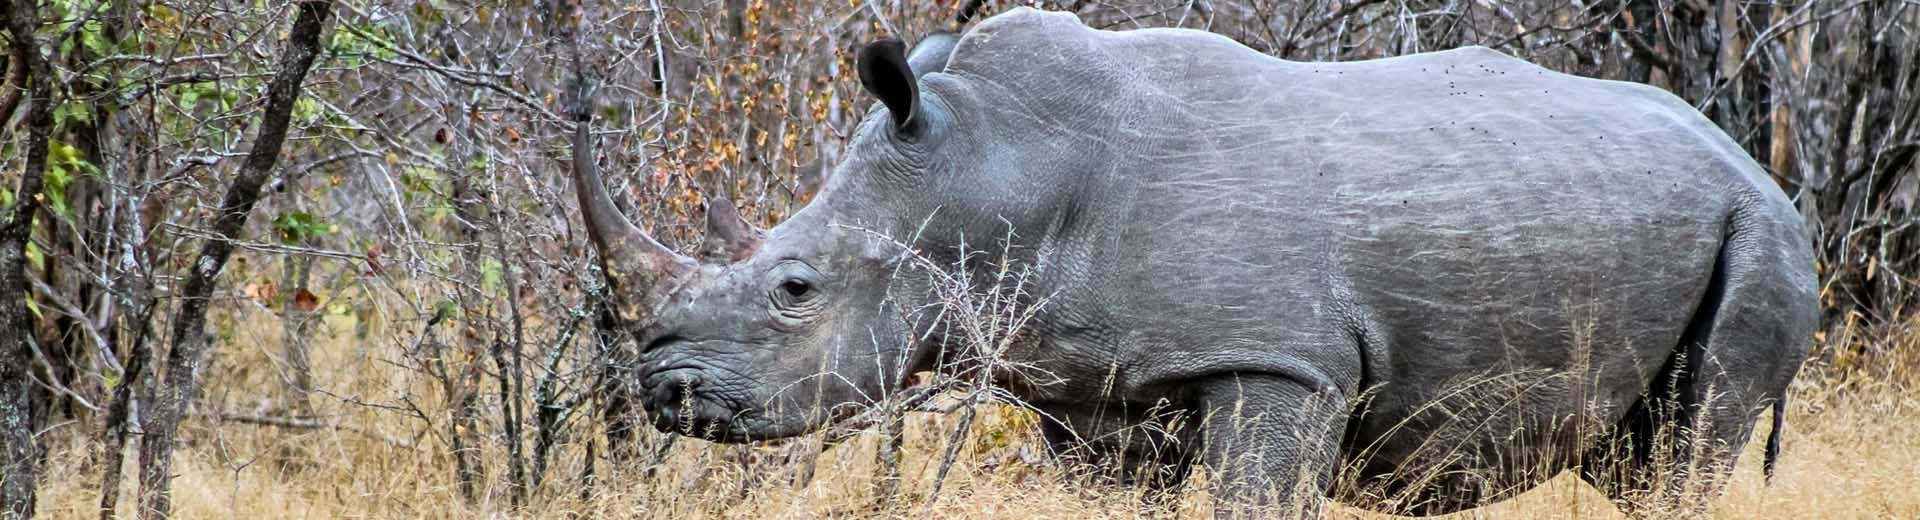 A rhino in the wild at Kruger National Park, South Africa (© Venessa Mathebula, age 15)